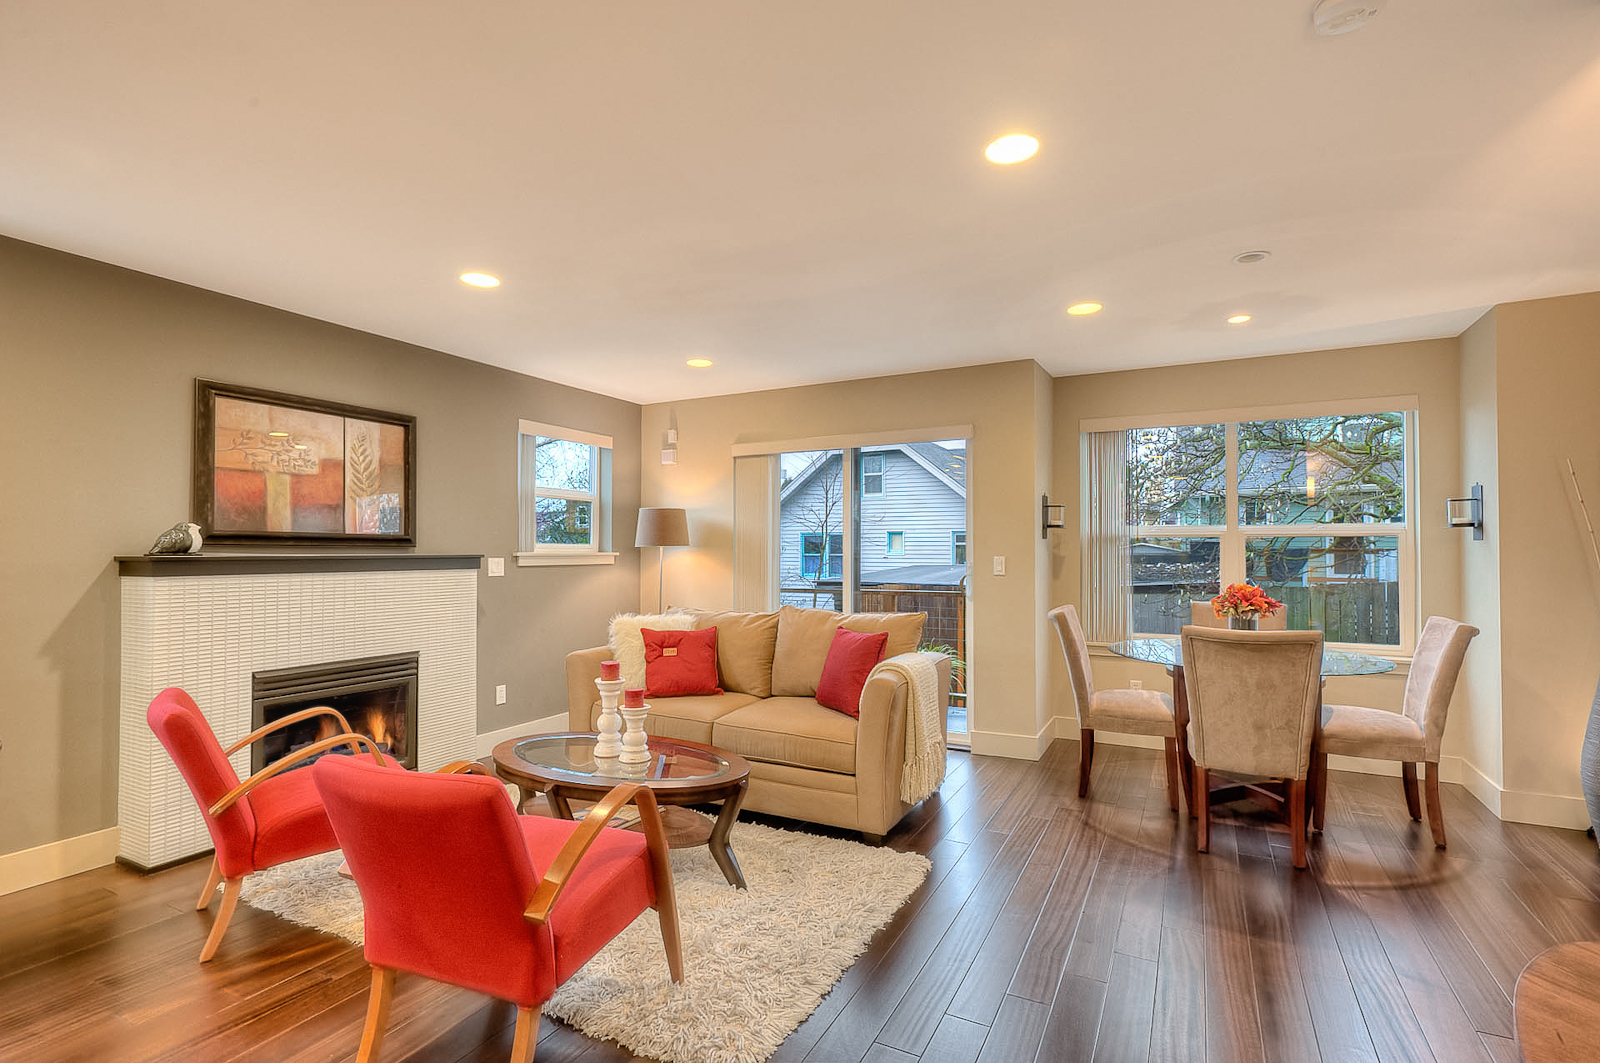 Room Arranging: Furniture Placement Ideas For A No Cost Living Room Remodel